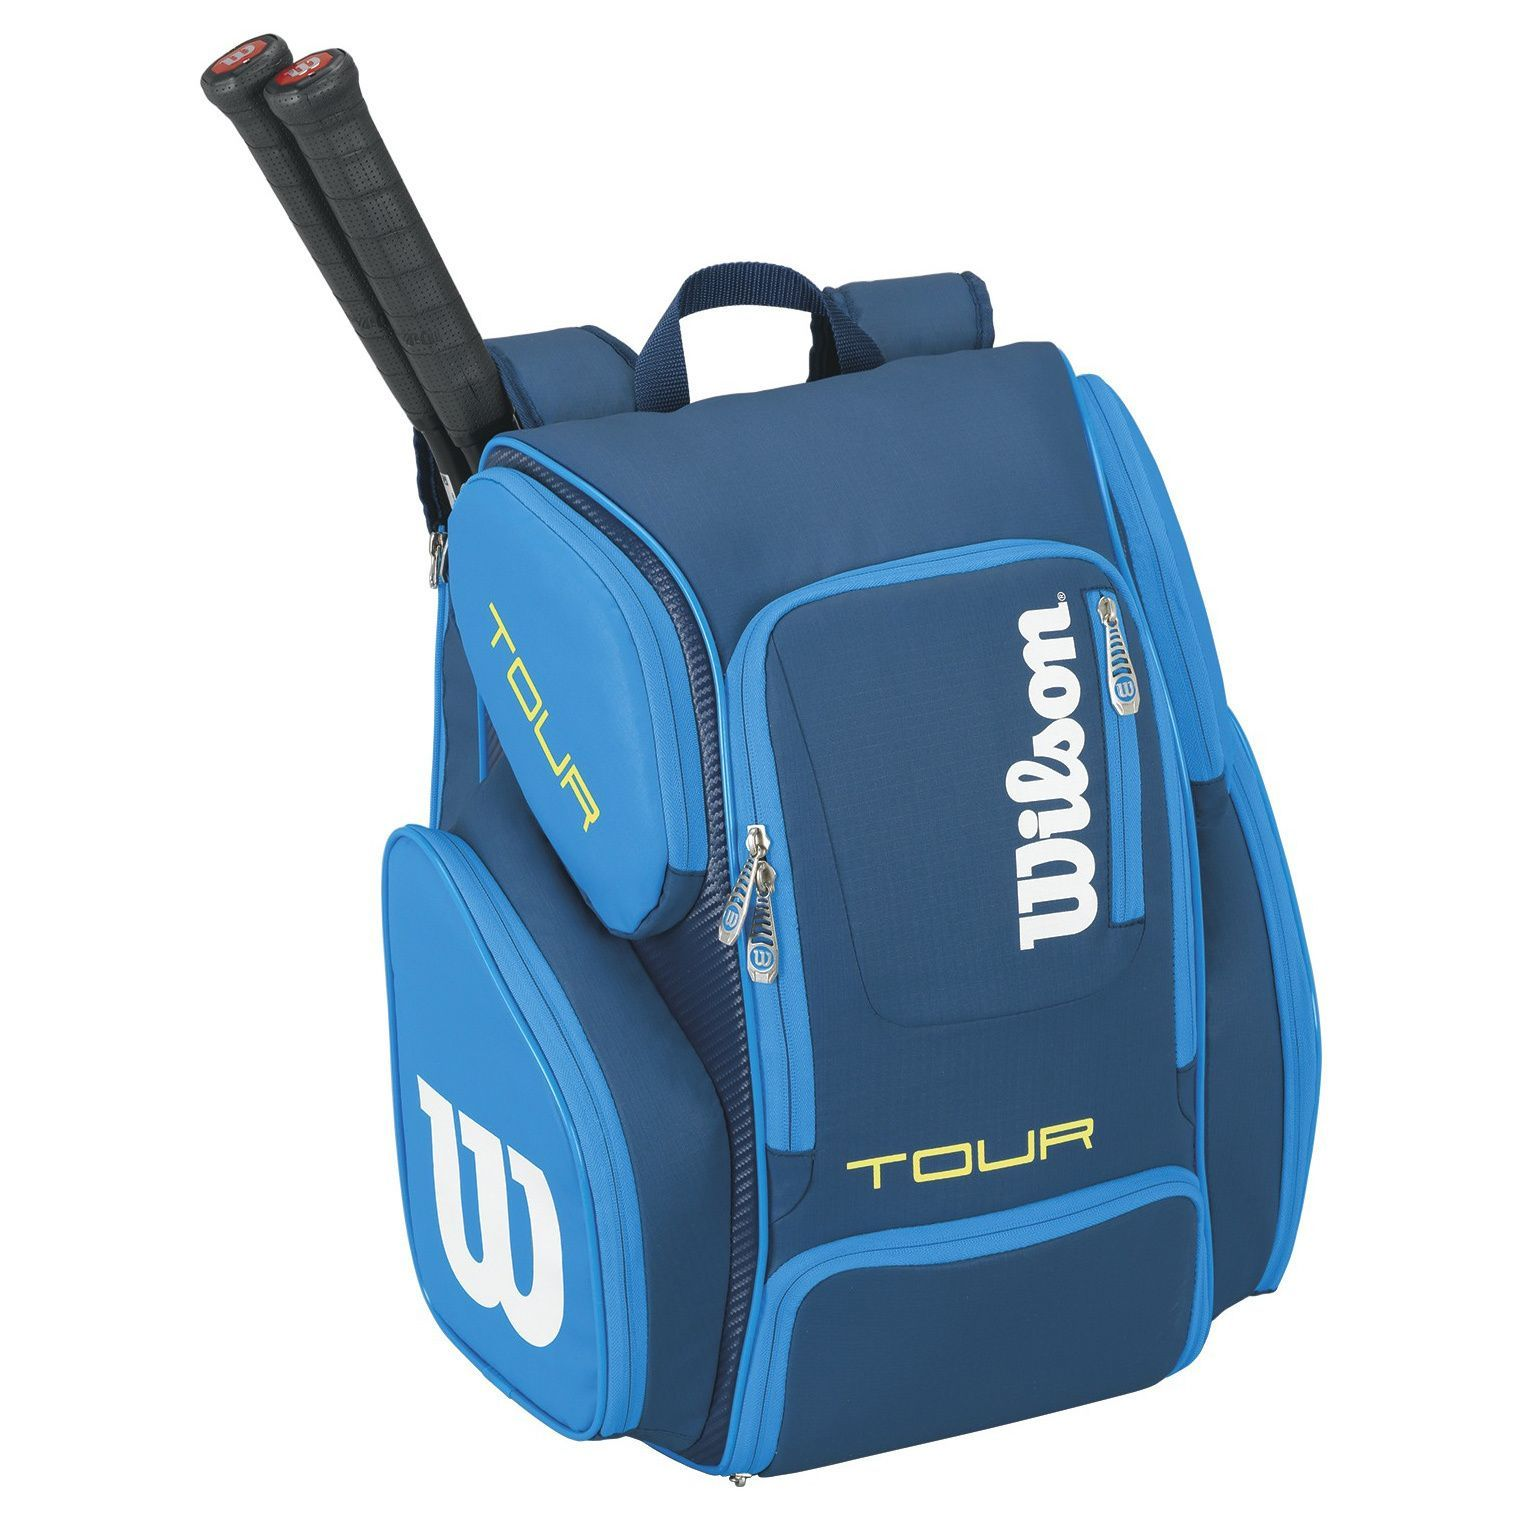 Overstock Com Online Shopping Bedding Furniture Electronics Jewelry Clothing More Tennis Bags Tennis Backpack Tennis Gear